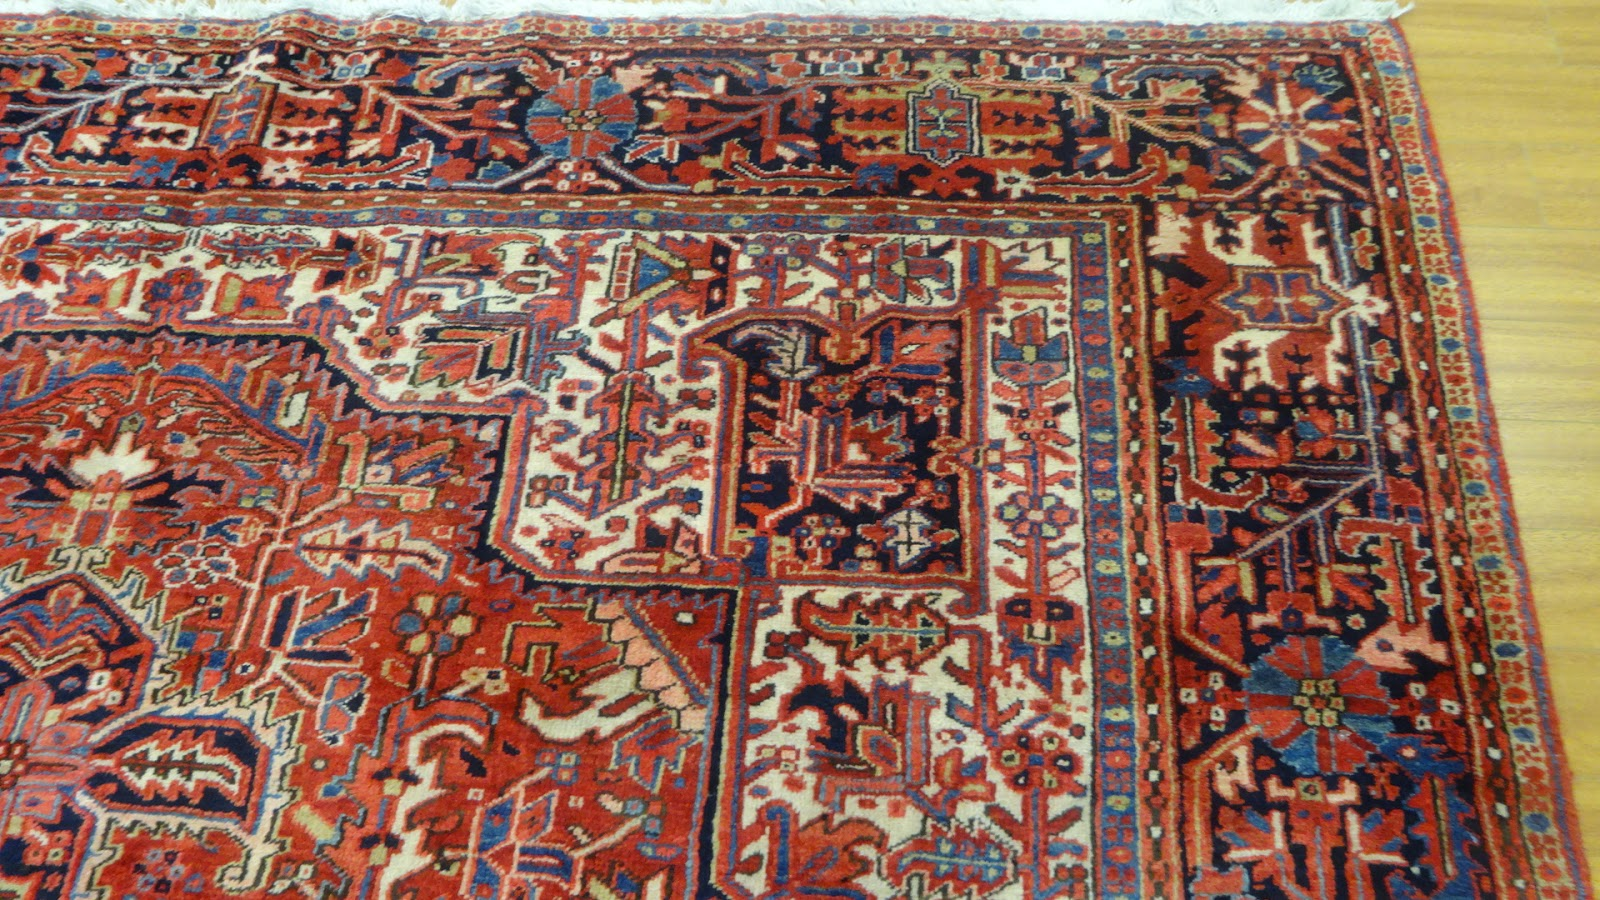 Most Heriz Rugs Are Collectible Pieces Of Art As They Get Better With Age.  Heriz Is A Very Small Town Close To Tabriz In North West Iran.